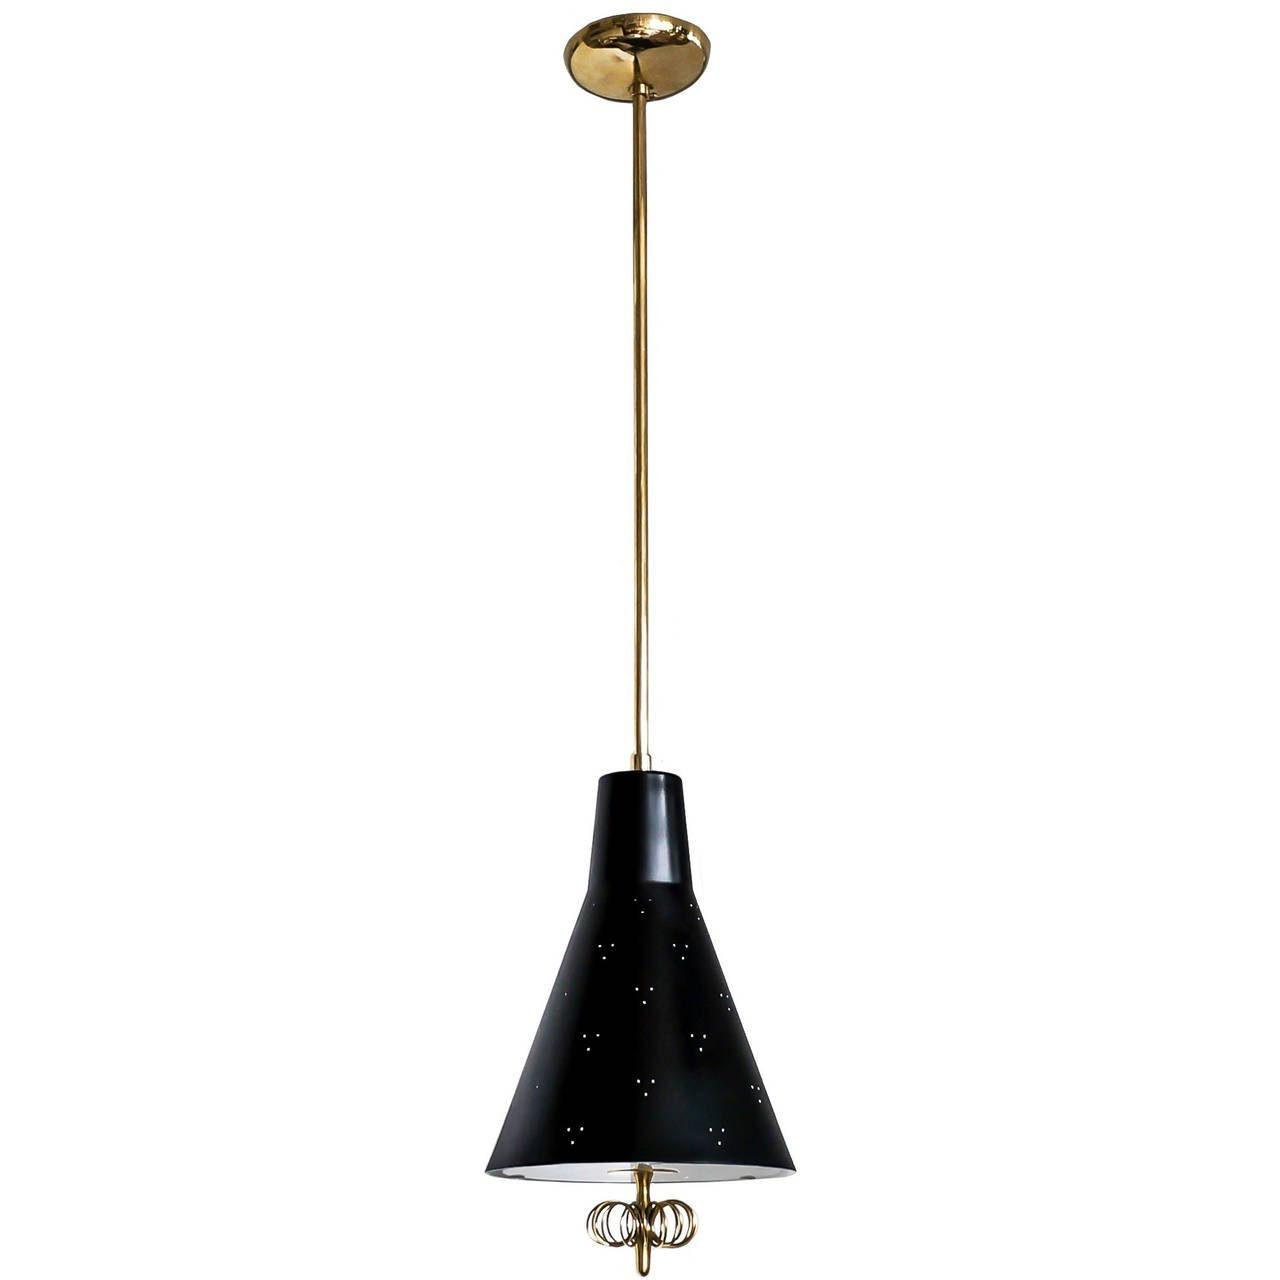 Paavo Tynell Ceiling Light, Taito Oy, Early 1950s - The Exchange Int